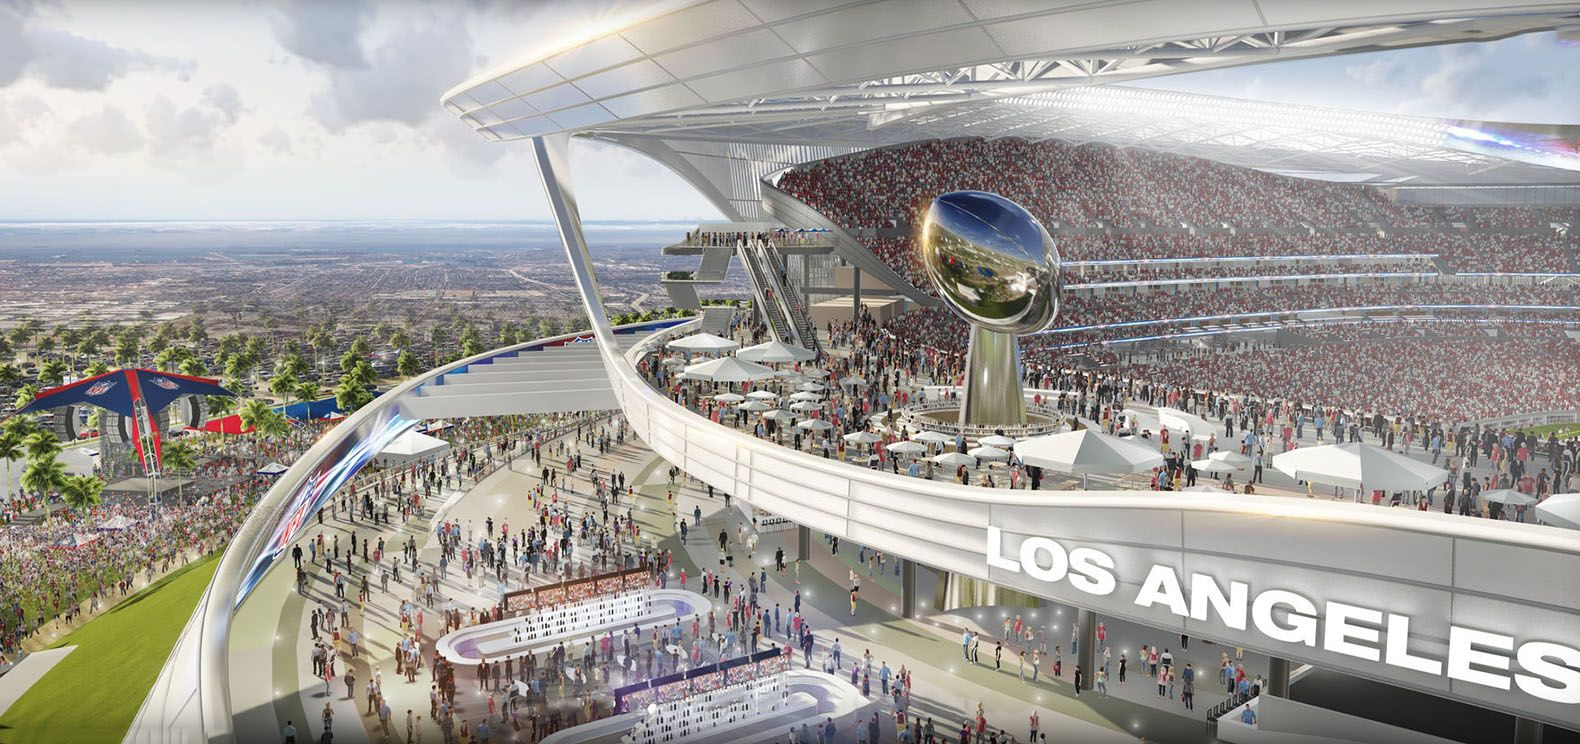 New Chargers And Raiders Stadium Design Features A Farmers Market And Electric Car Charging Stations San Diego Chargers Los Angeles Architecture